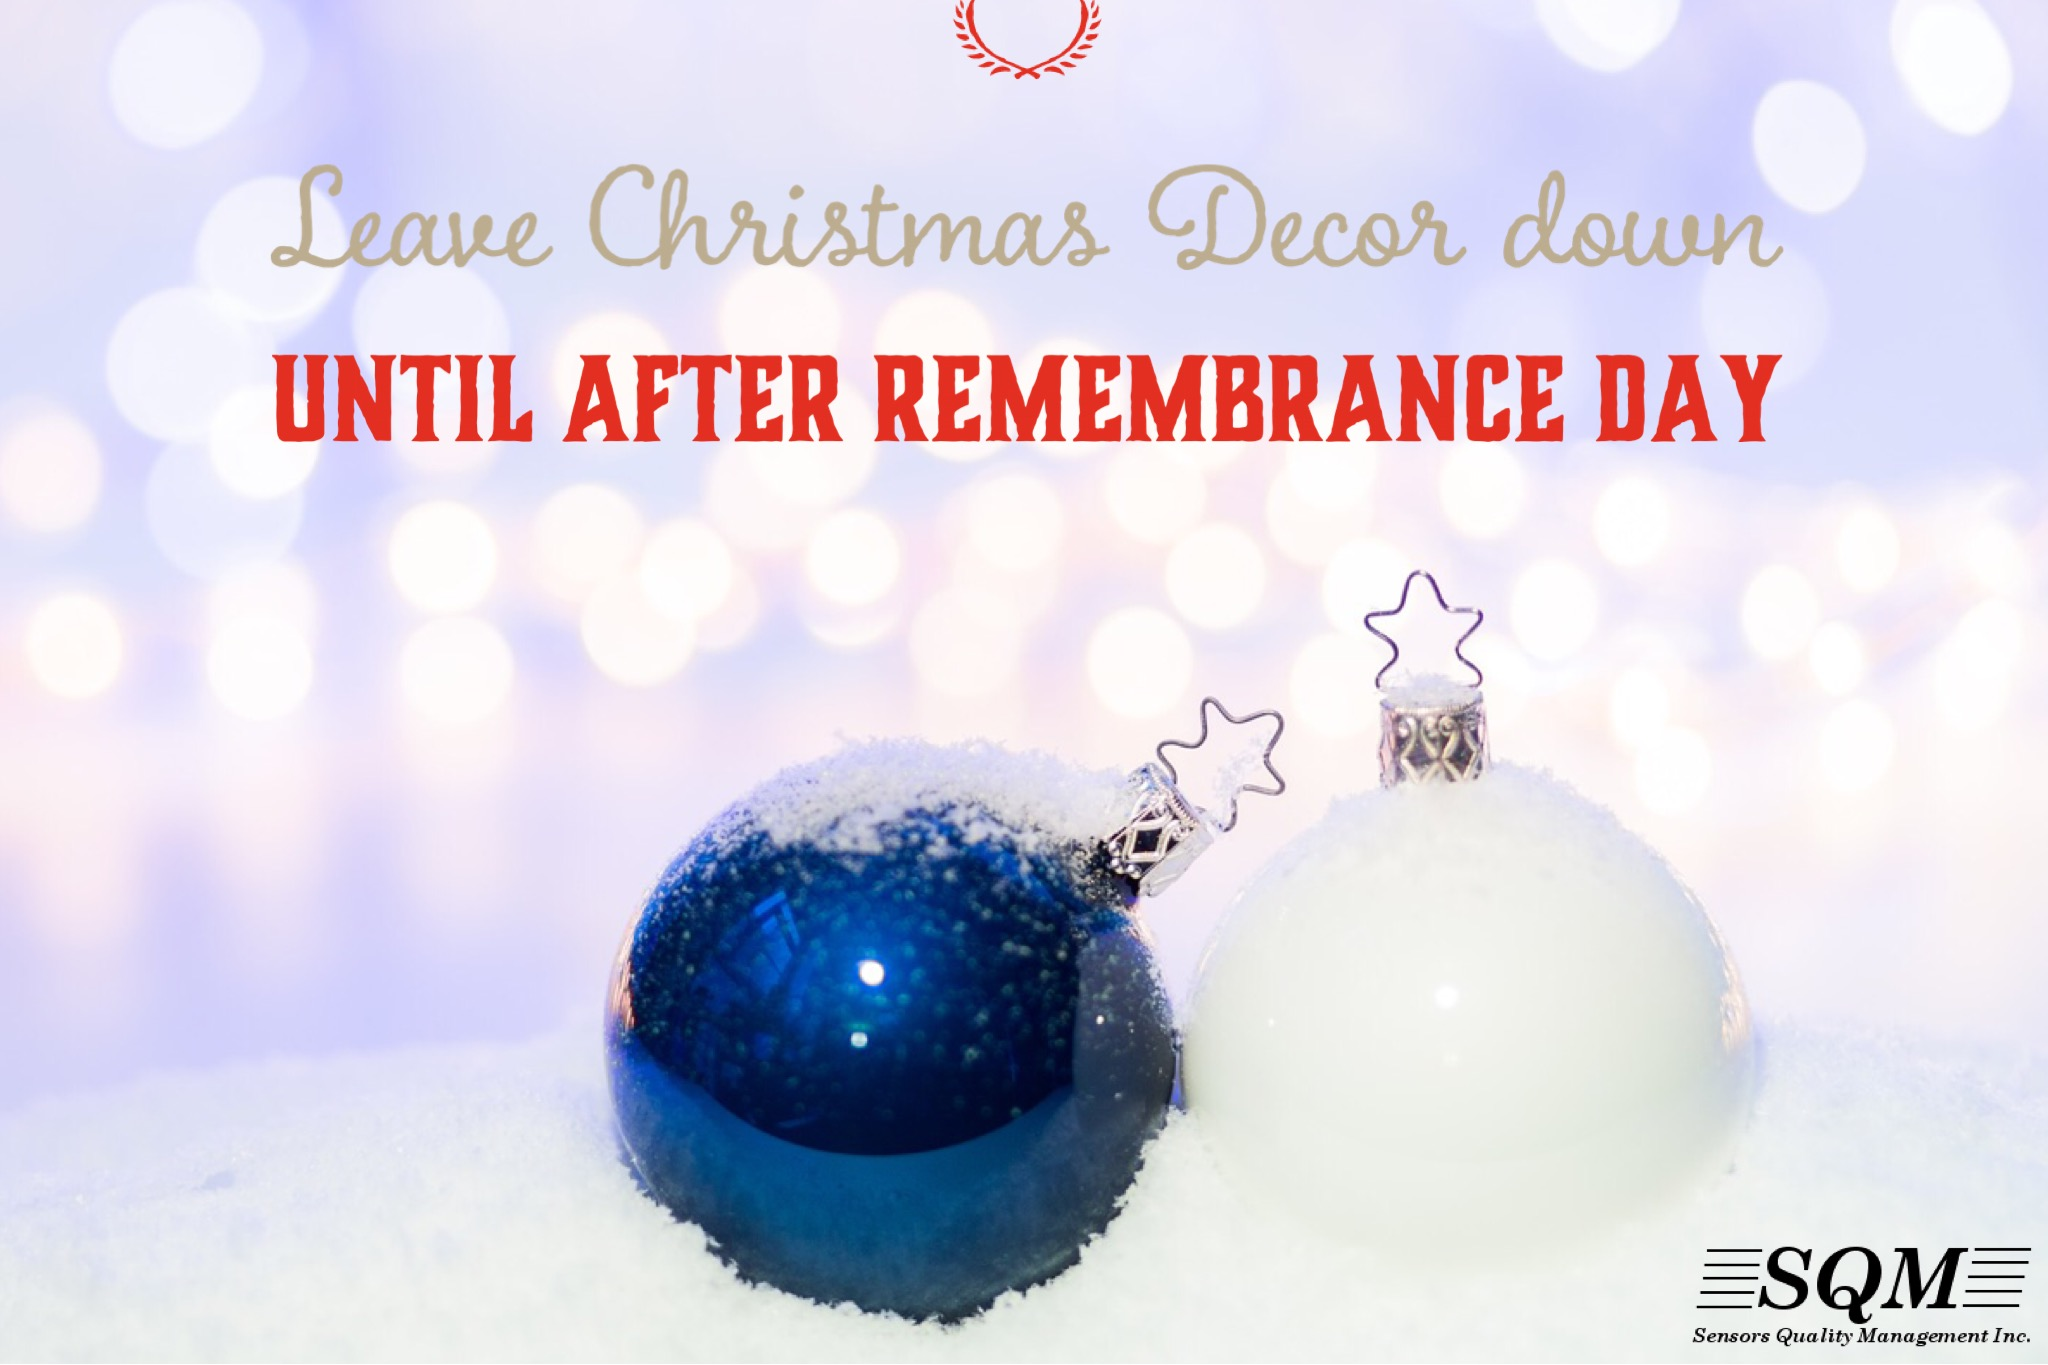 Leave Christmas Decor Down until After Remembrance Day